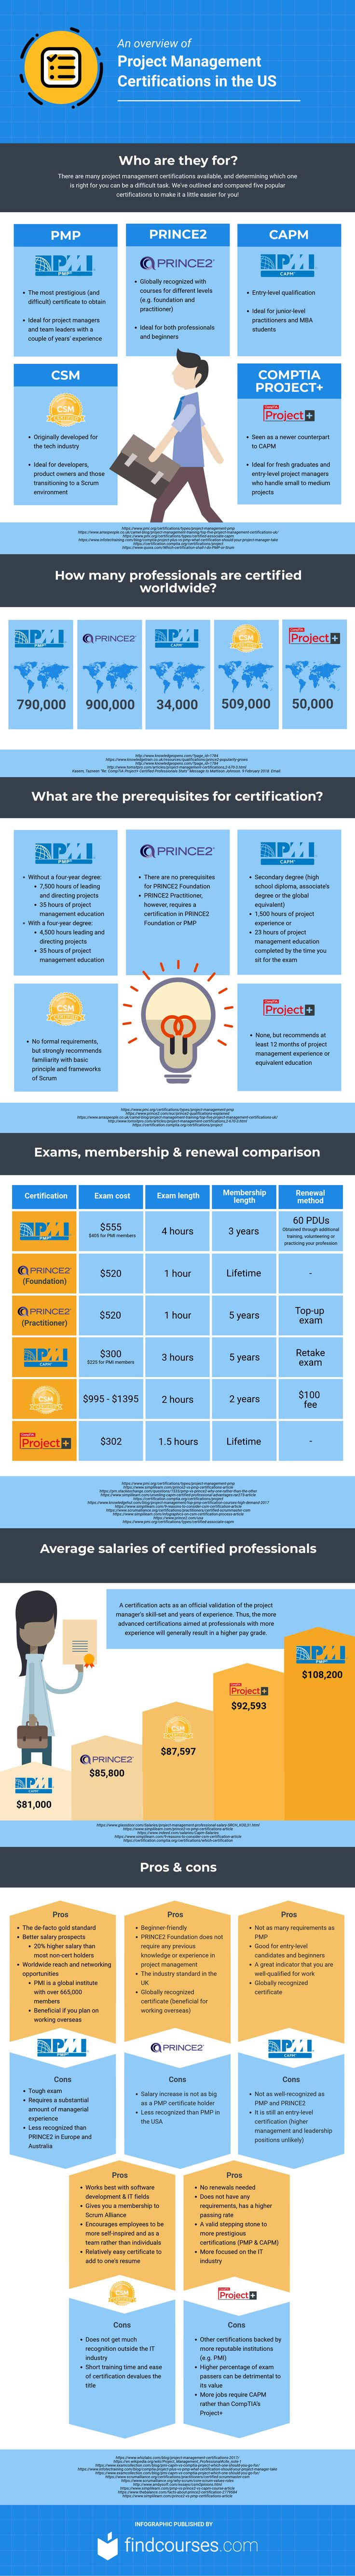 Best 25 project management courses ideas on pinterest project which project management certification course should i take this infographic compares the most common certifications 1betcityfo Image collections